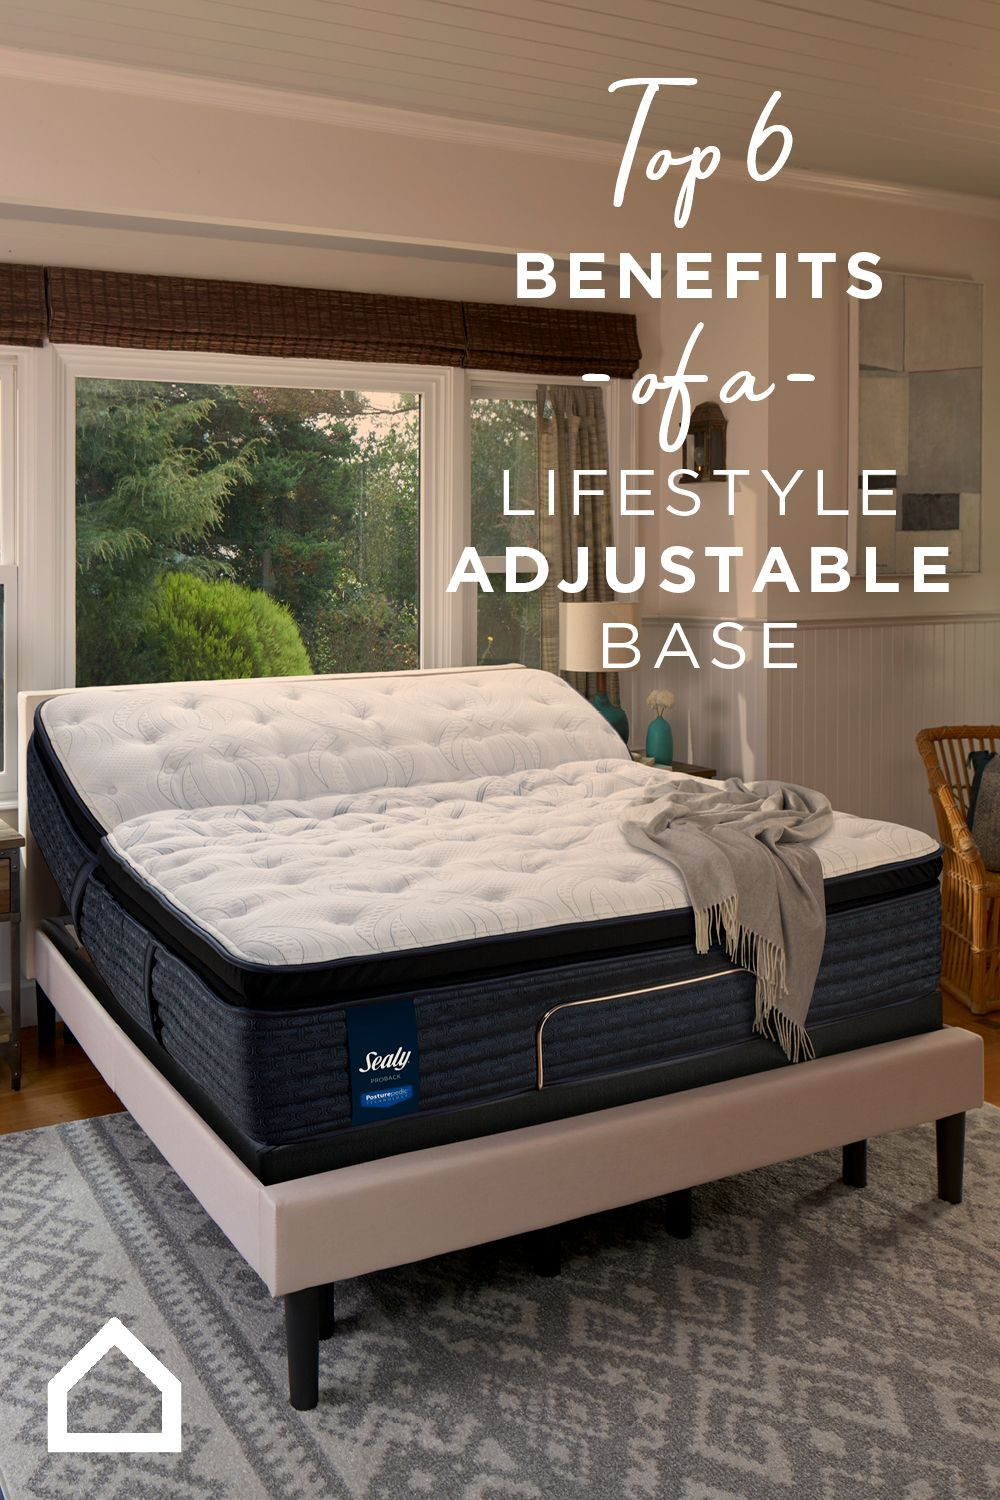 Top 6 Benefits of a Lifestyle Adjustable Base Adjustable